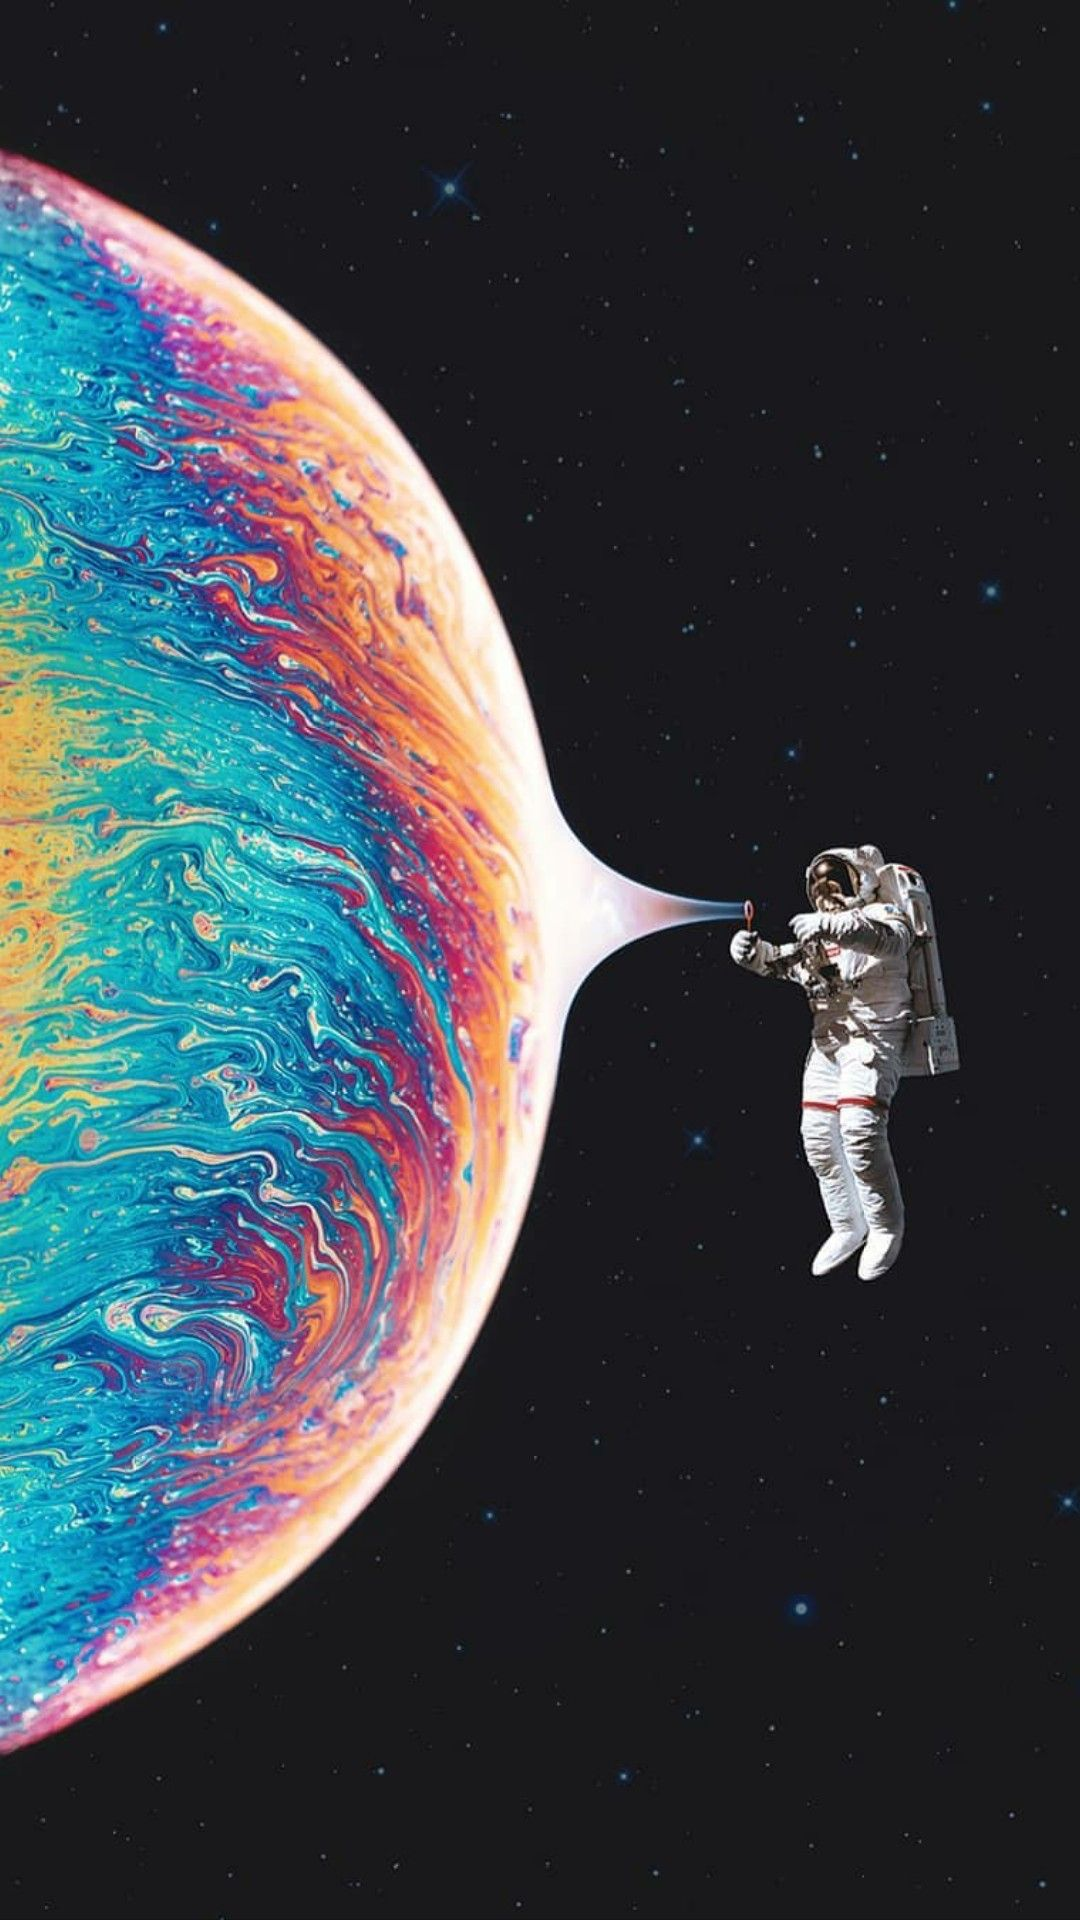 Pin By Angela Ariza On Space Astronaut Pictures Pop Art Wallpaper Space Art Astronaut Wallpaper